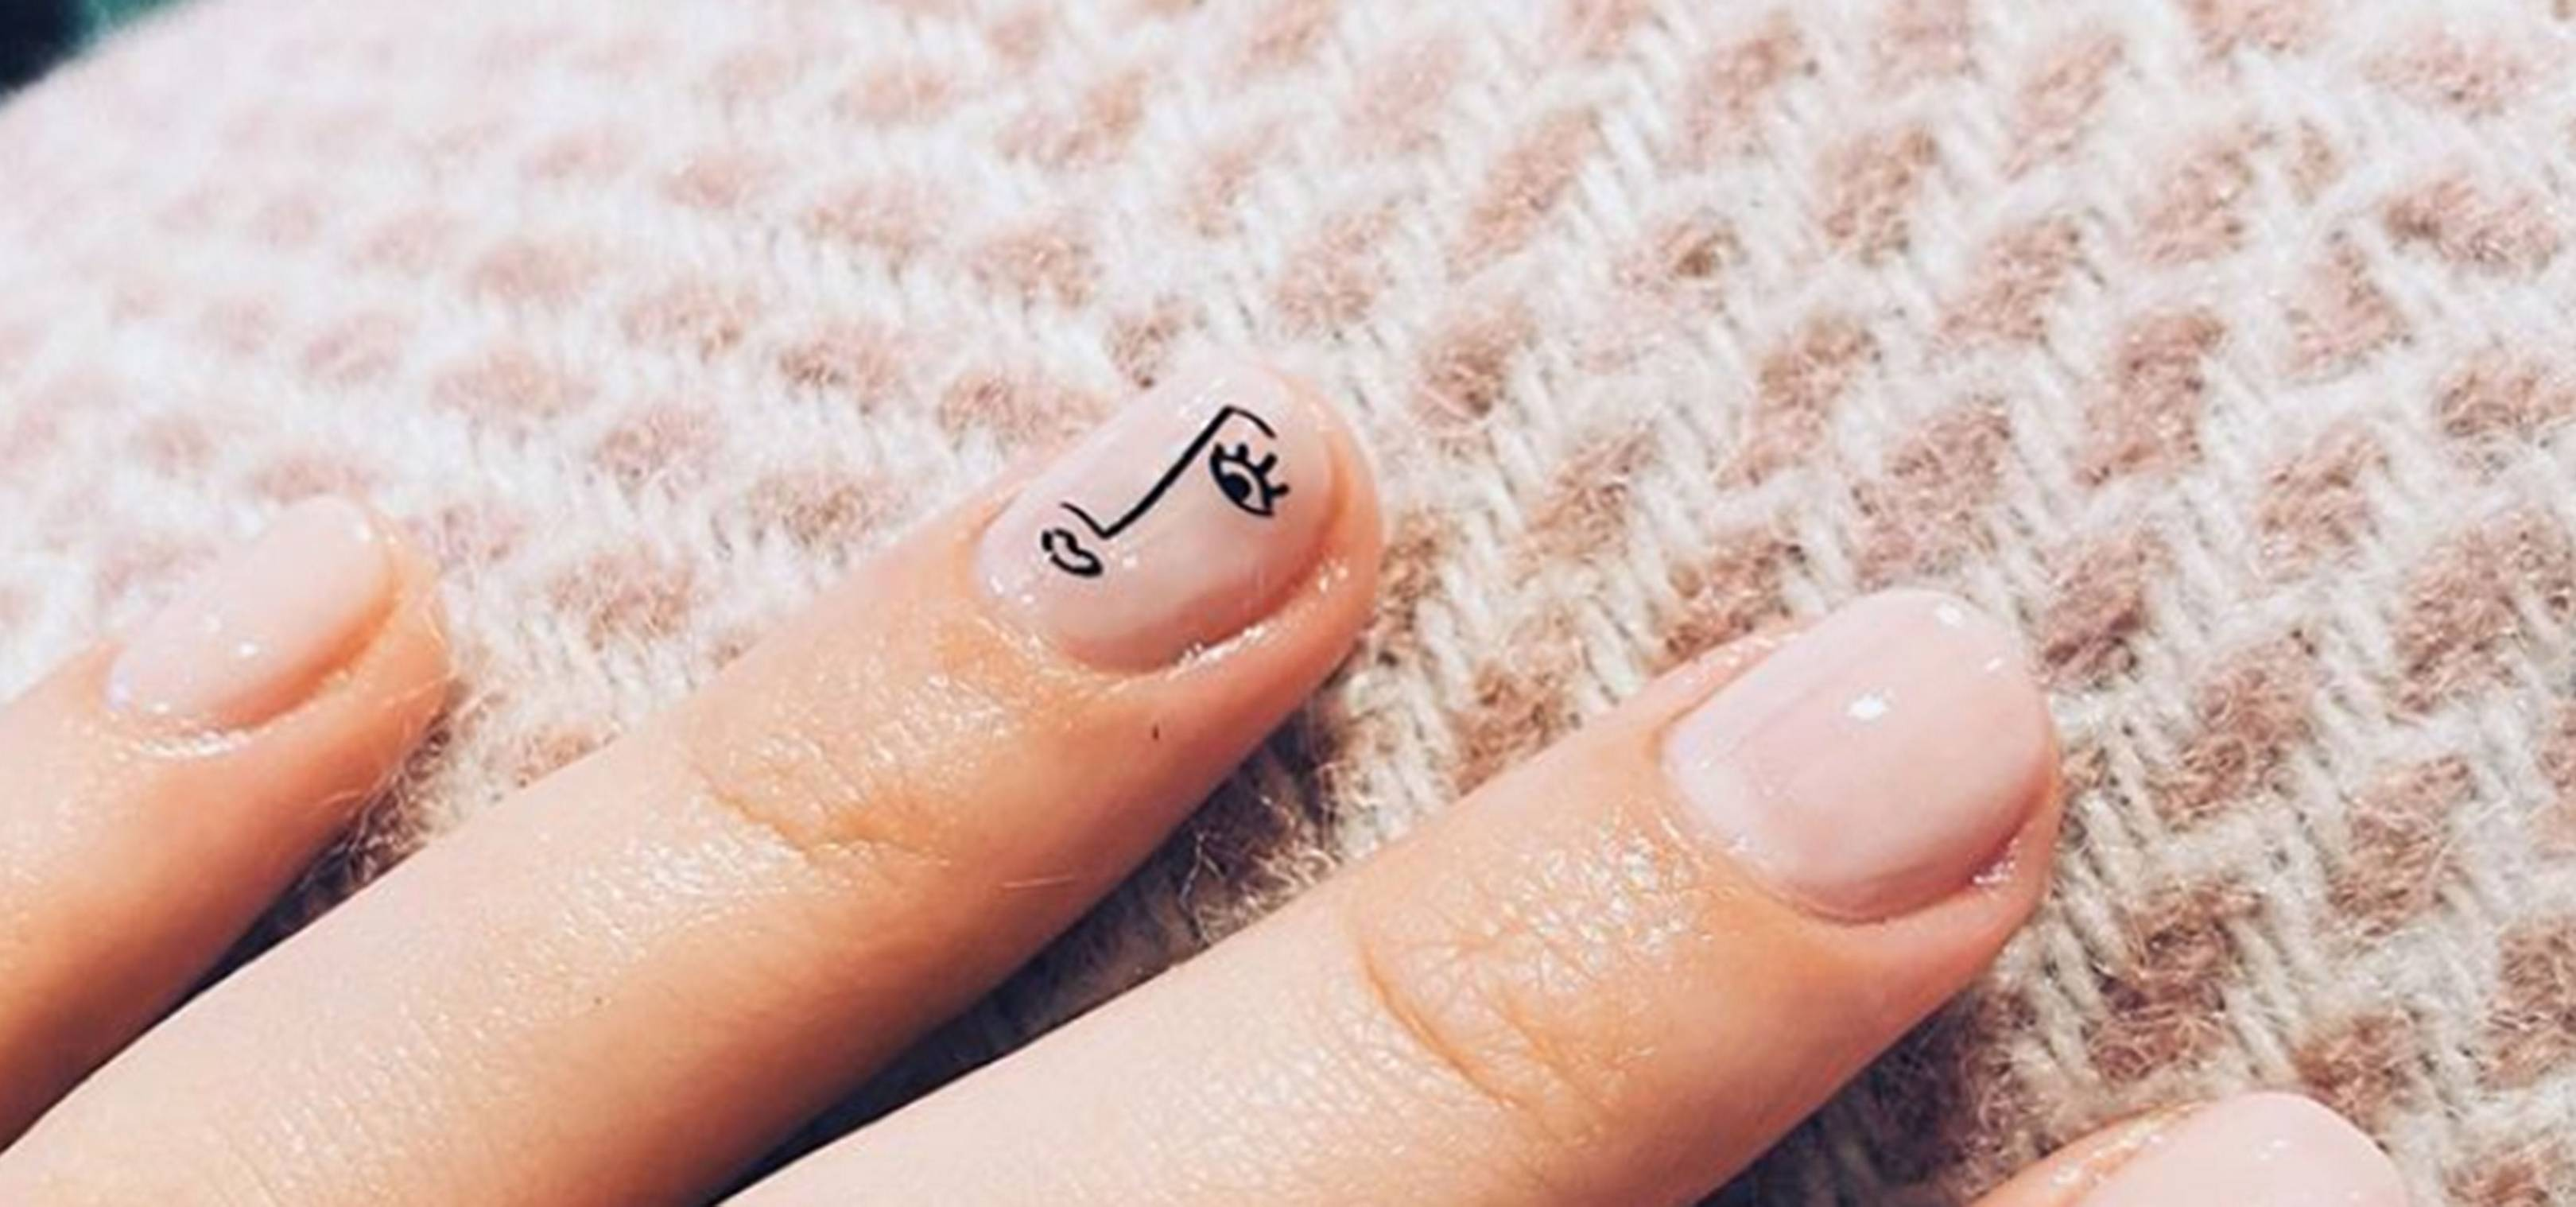 Ciaté's new Cheat Sheet nail stickers are pure nail art genius